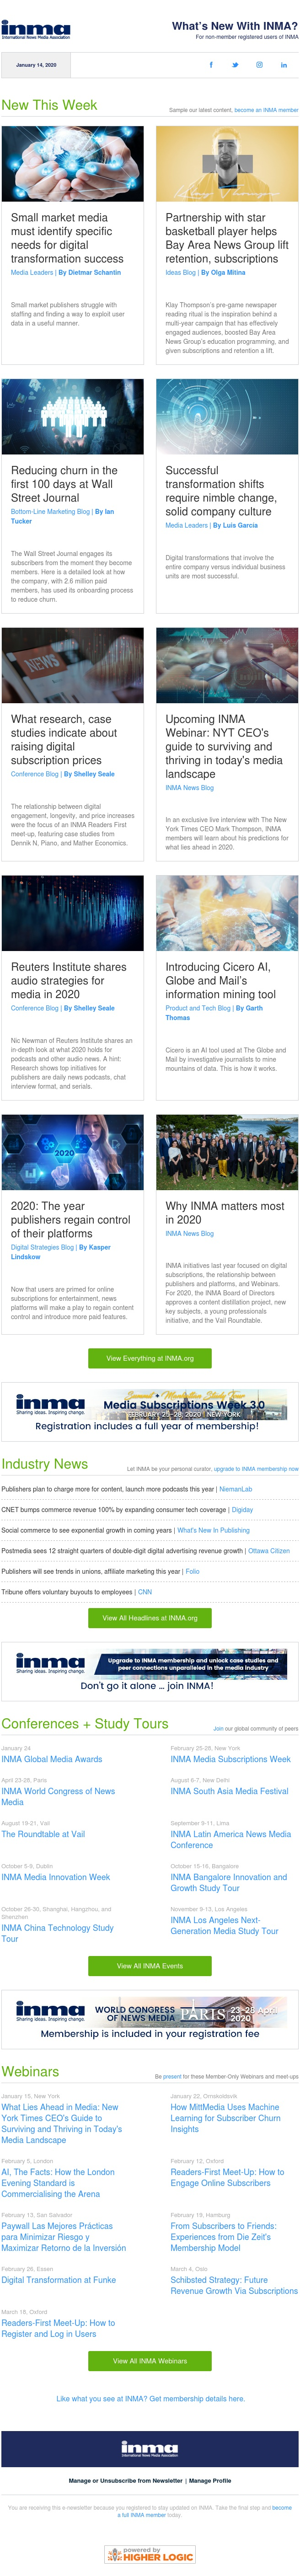 What's new at INMA: Digital transformation for small markets